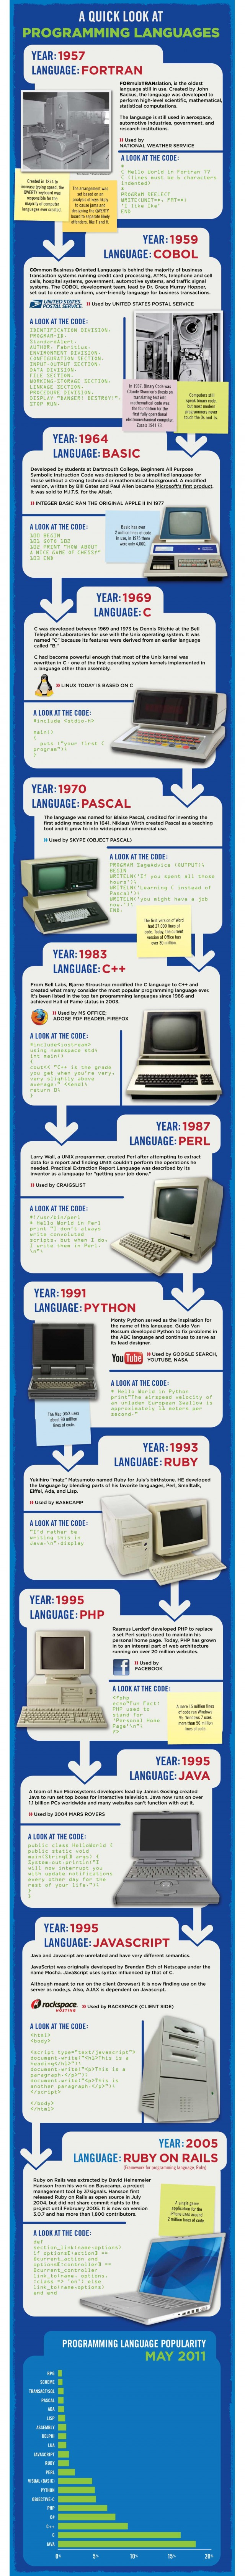 Evolution of programming languages (from Rackspace)